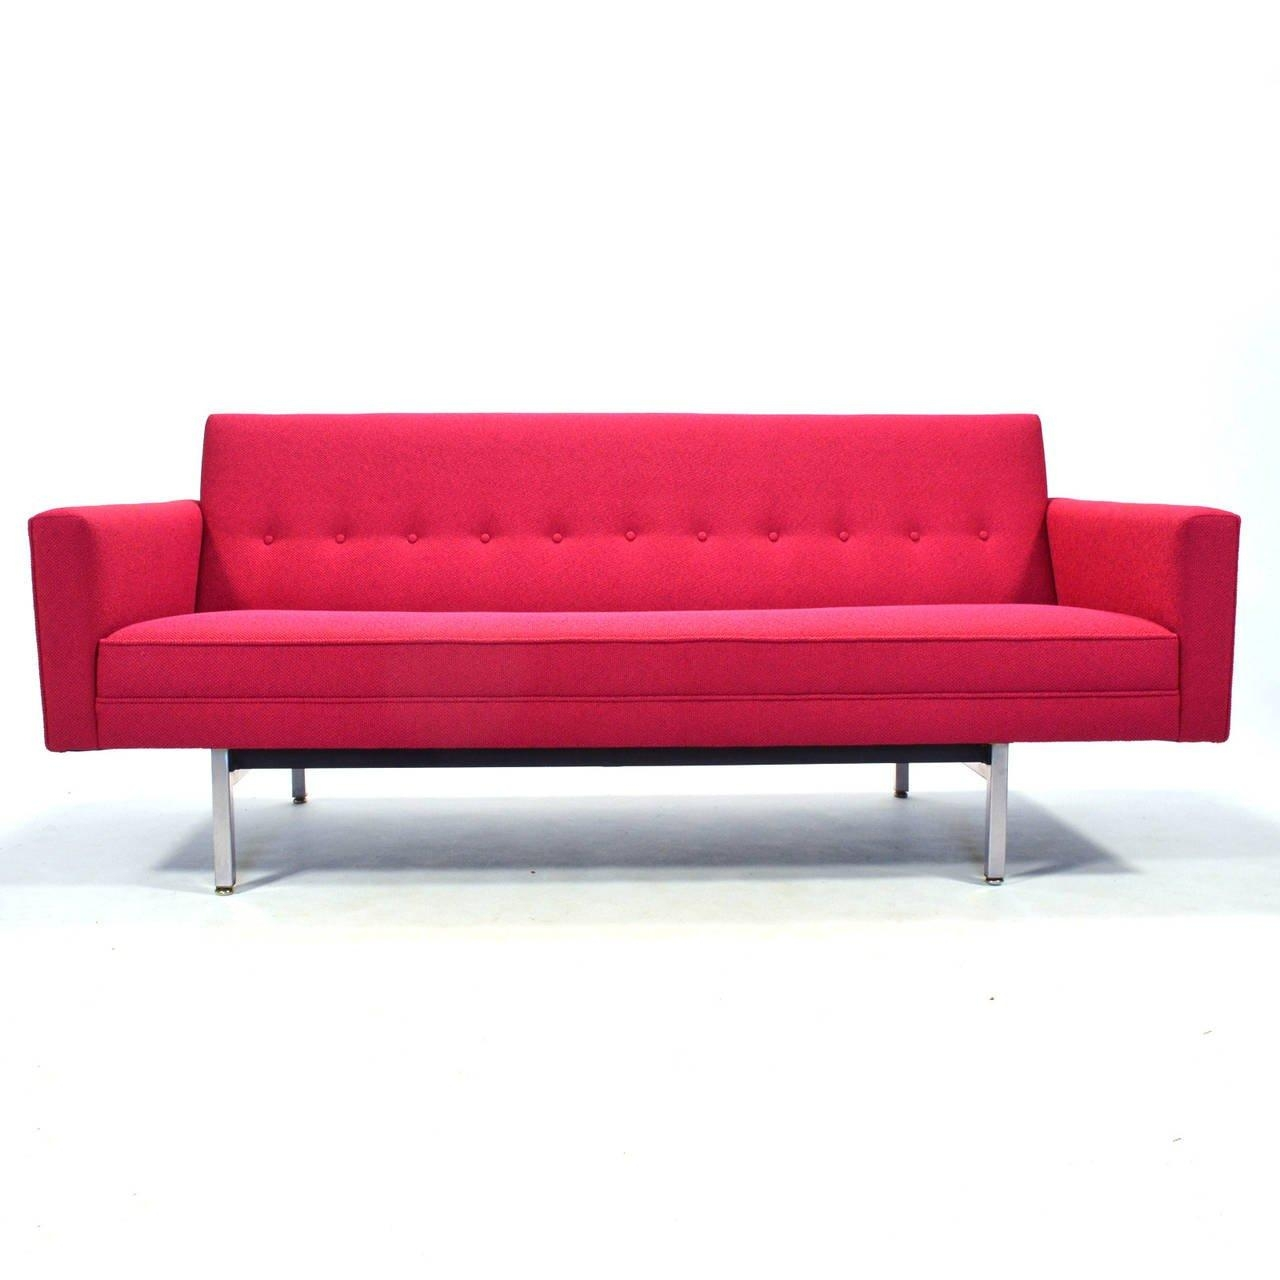 George Nelson Modular Group Sofa For Sale At 1Stdibs with George Nelson Sofas